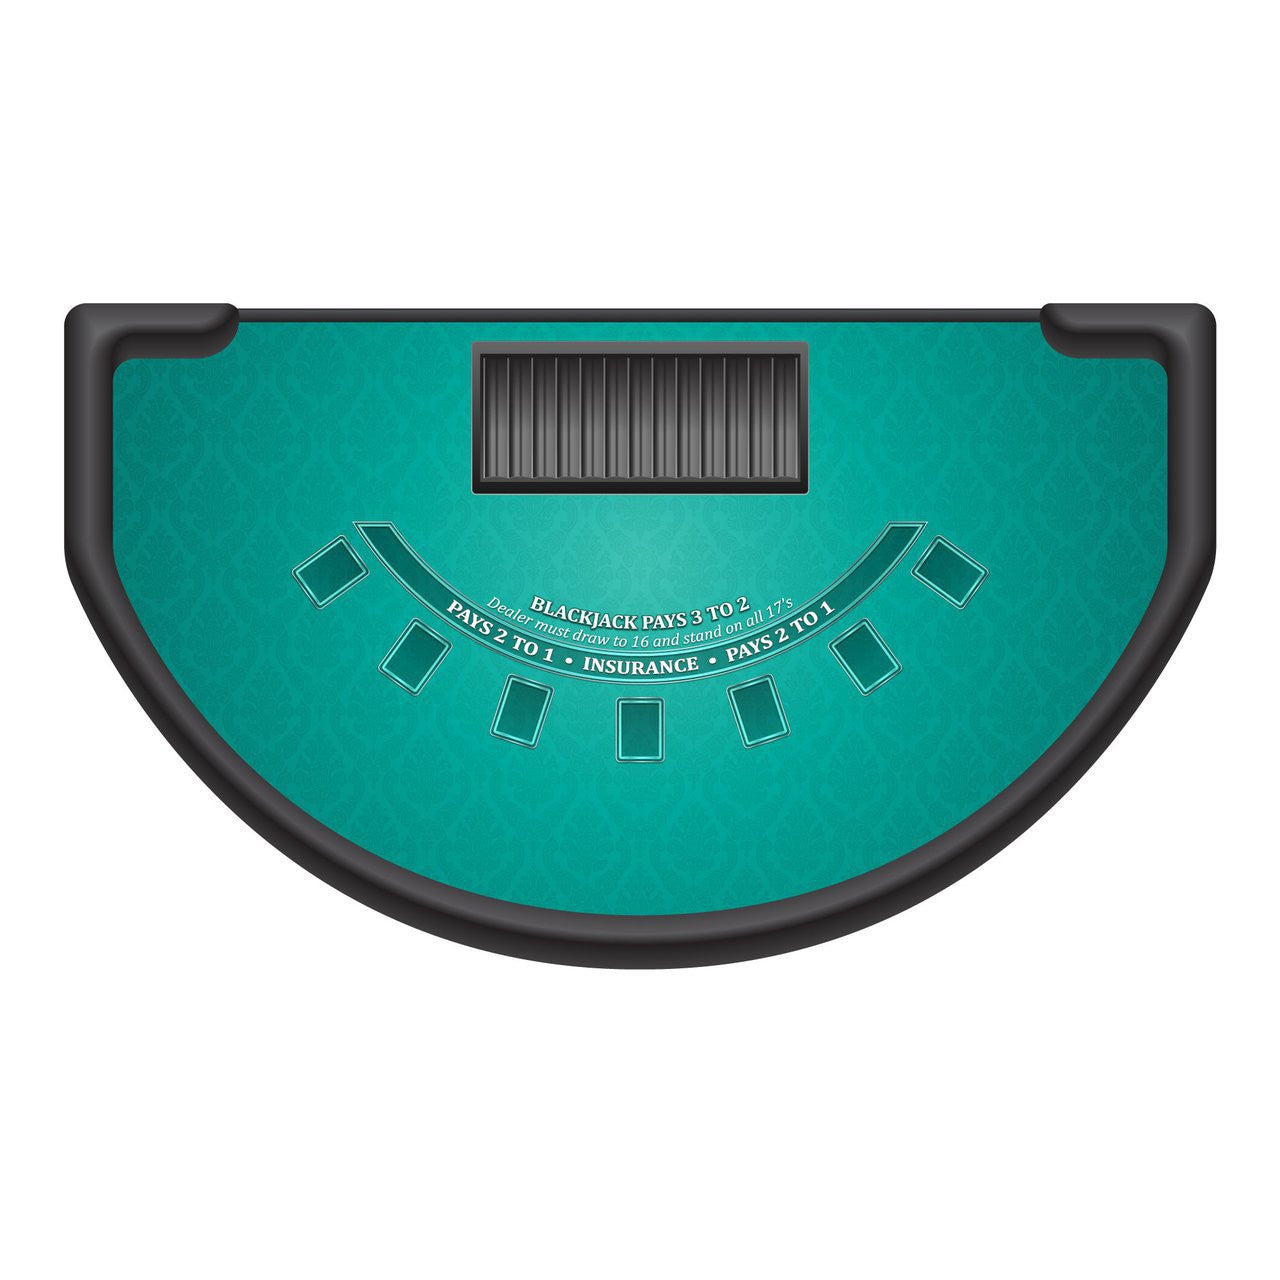 Classic Blackjack Layout - TEAL - Casino Supply